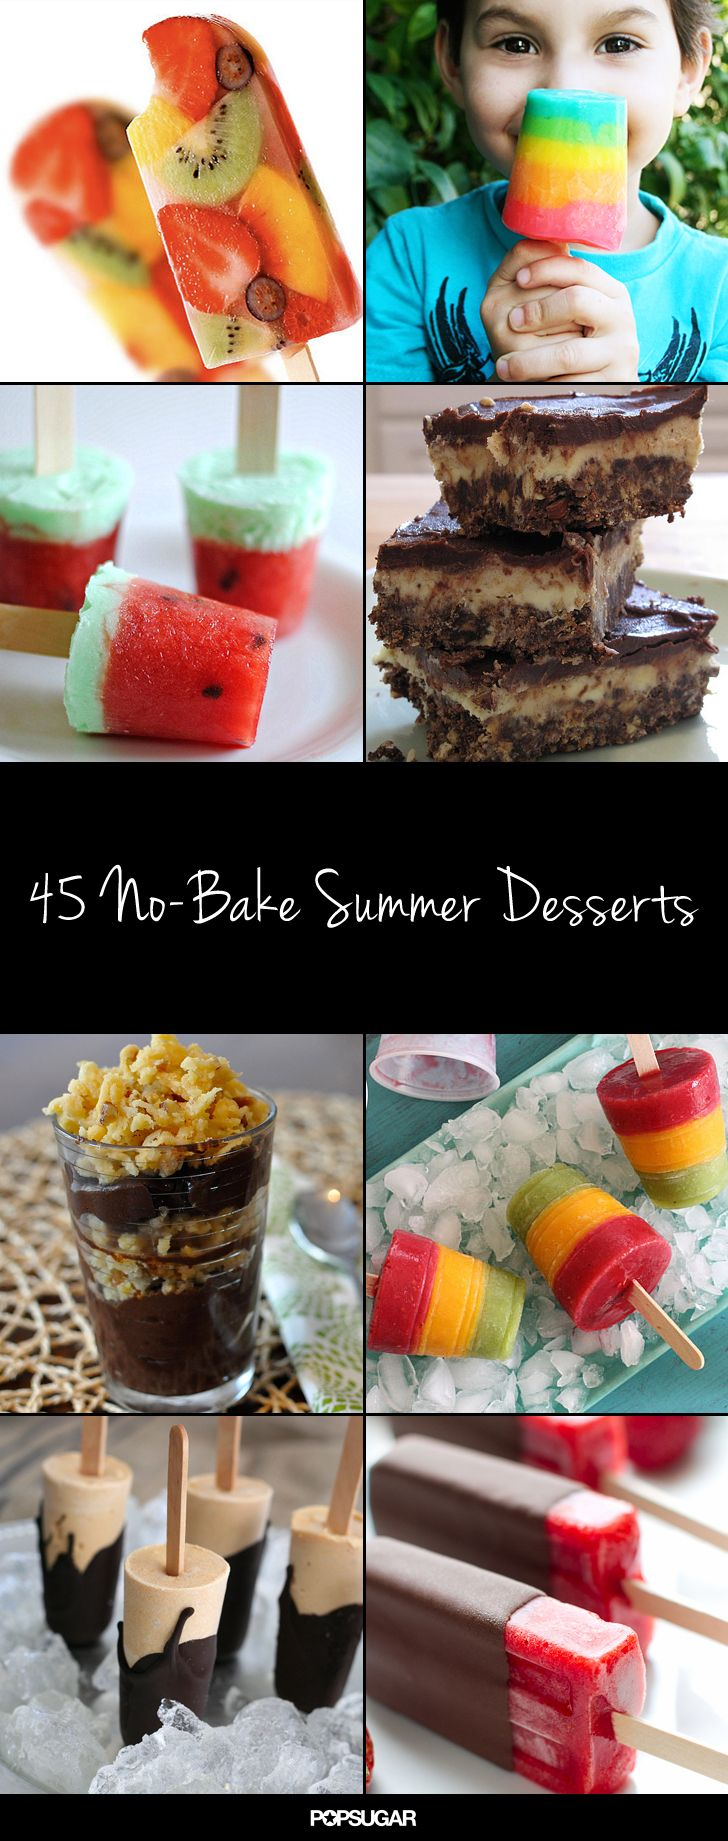 45 Delicious No-Bake Summer Dessert Ideas - Absolutely love these and the majority of the recipes are additive and preservative free or very easily adaptable to be!